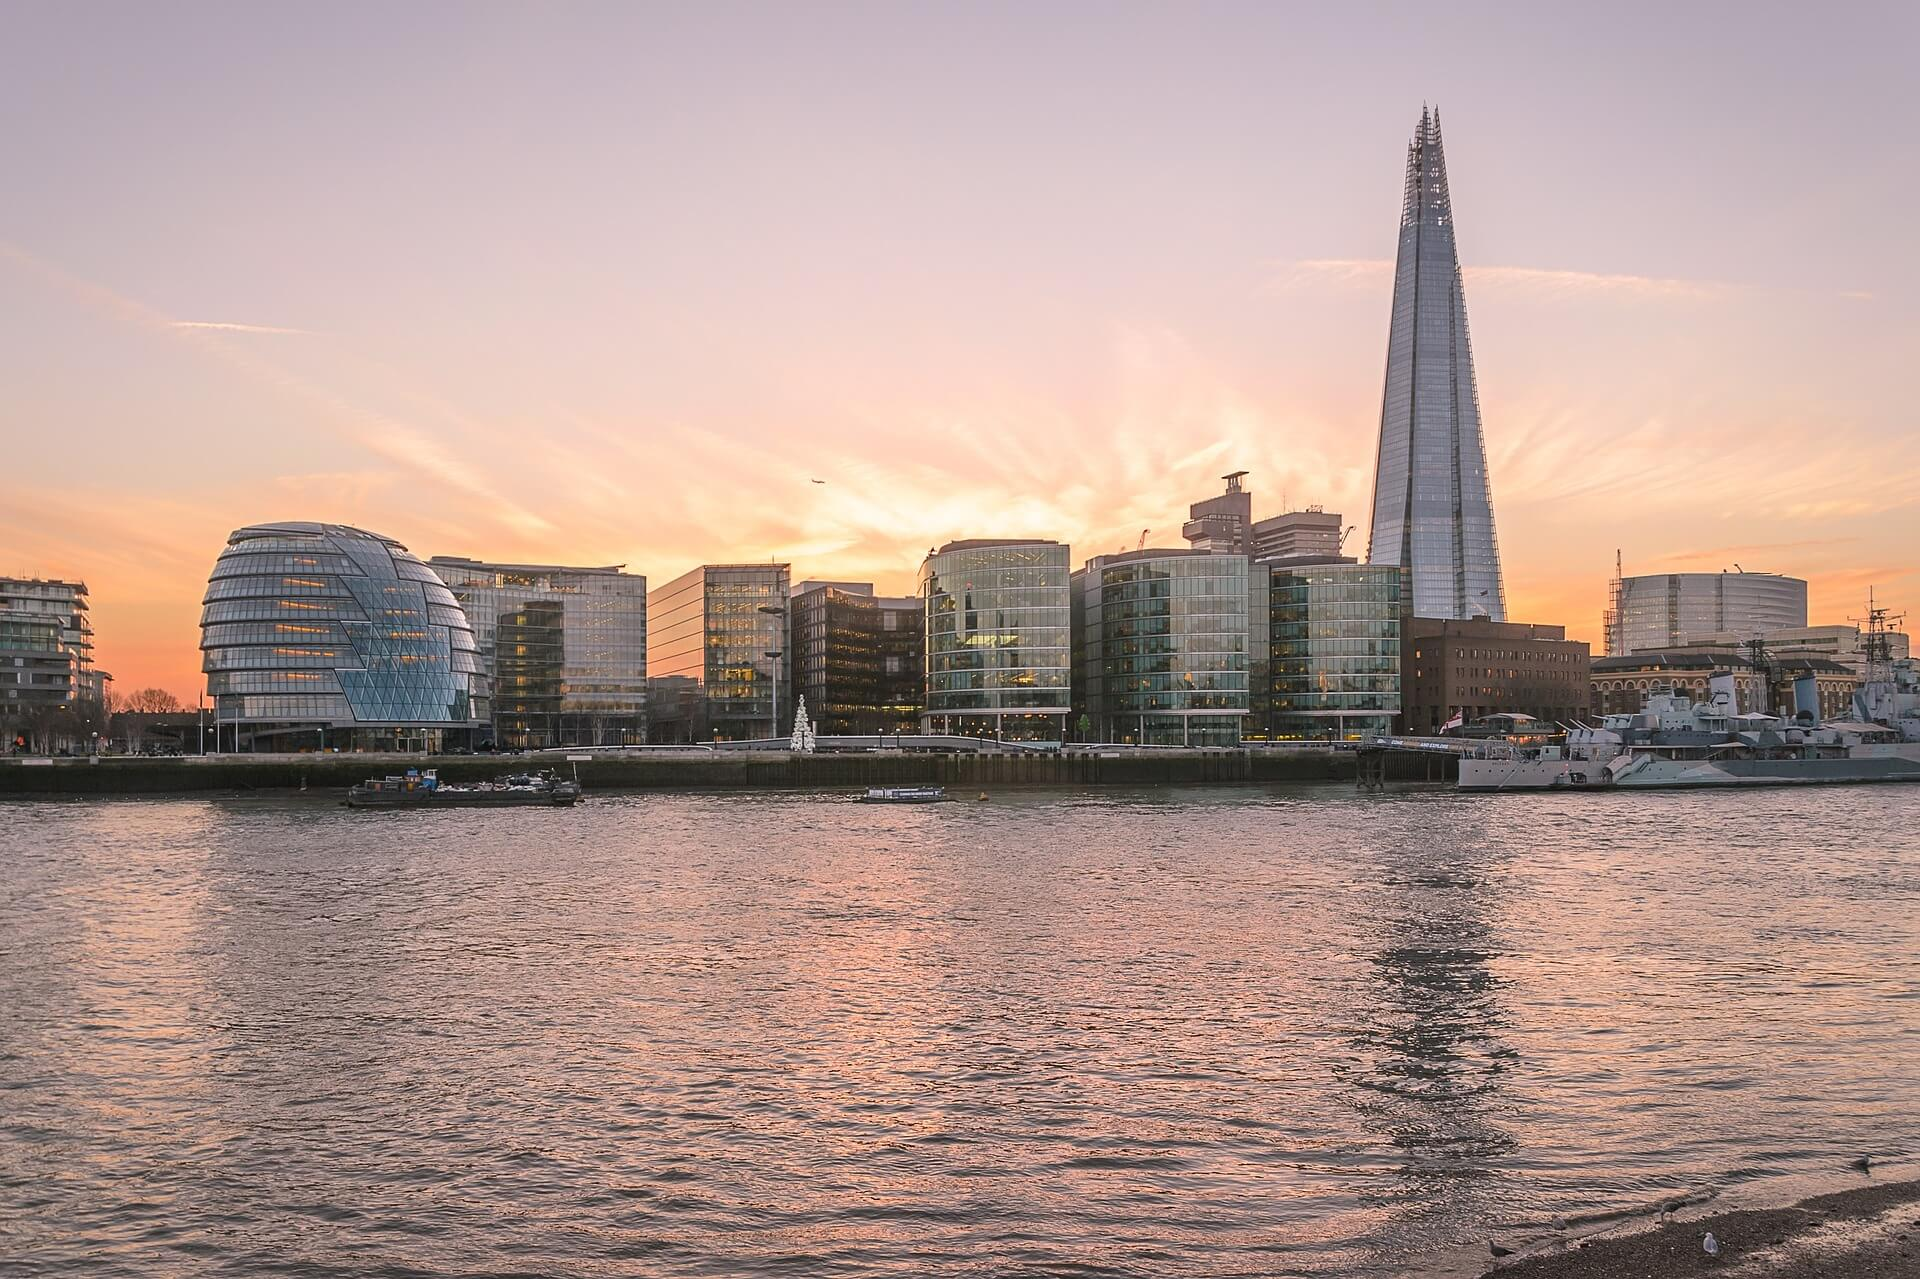 London Skyline at sunset from the waters edge